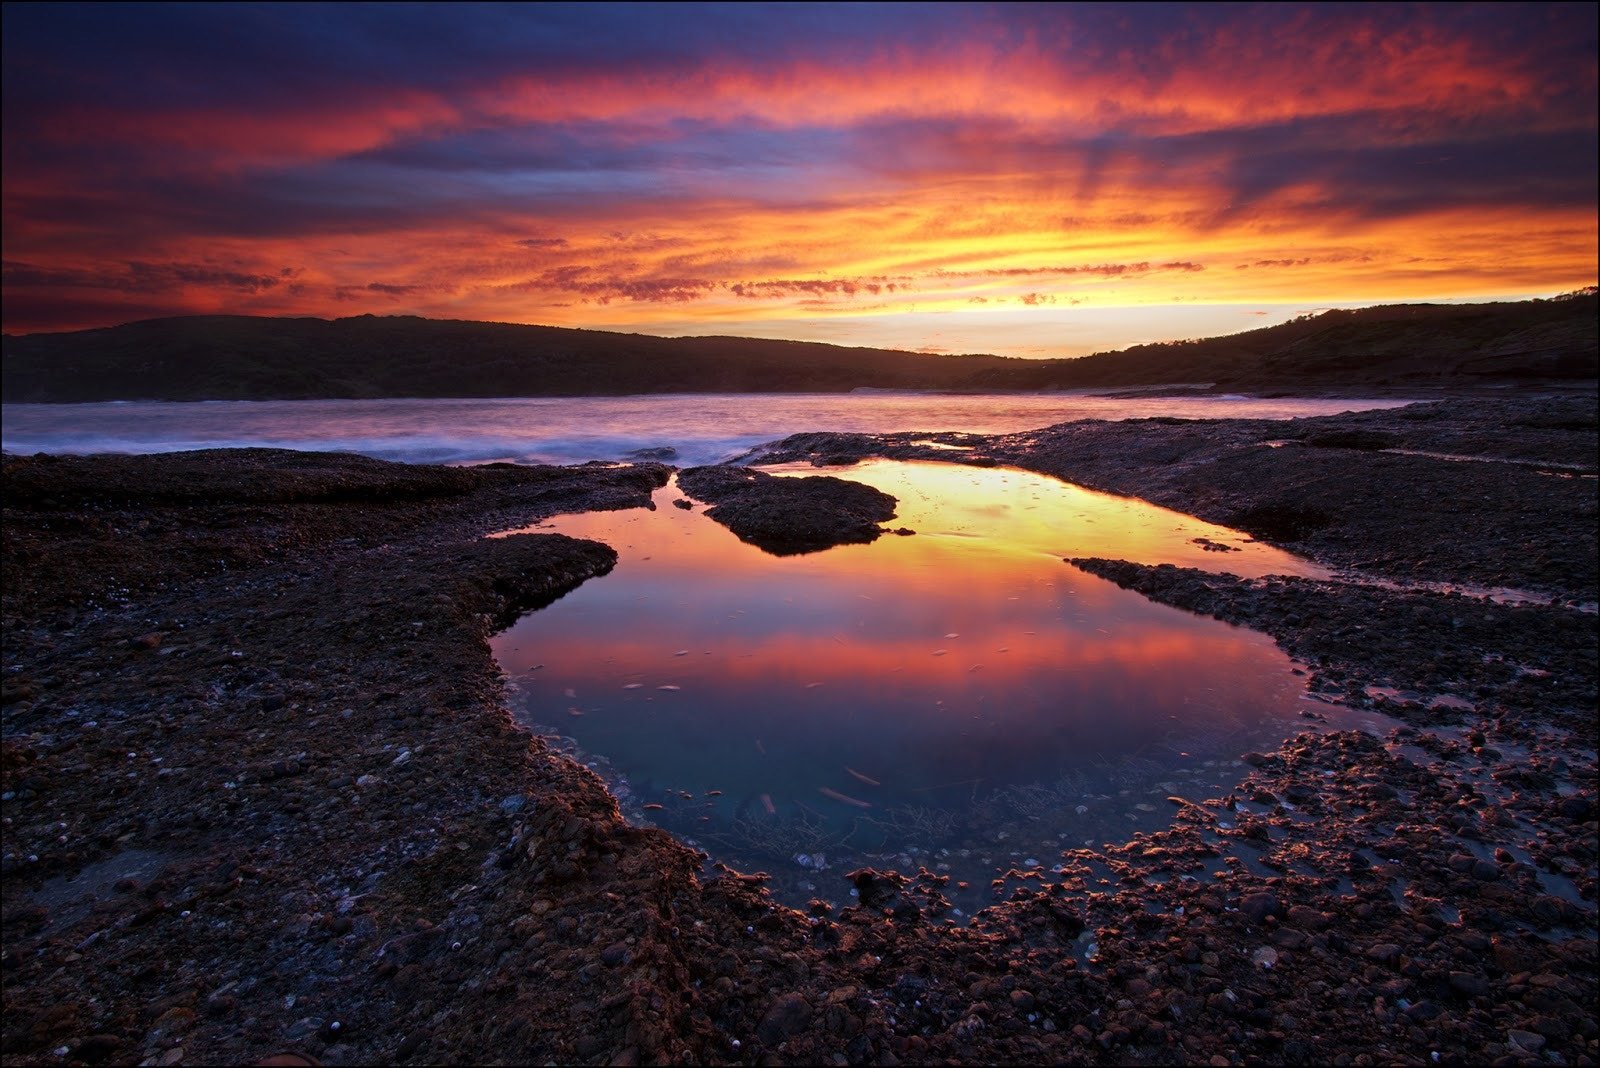 Photograph Sunset Reflections by Steve Passlow on 500px